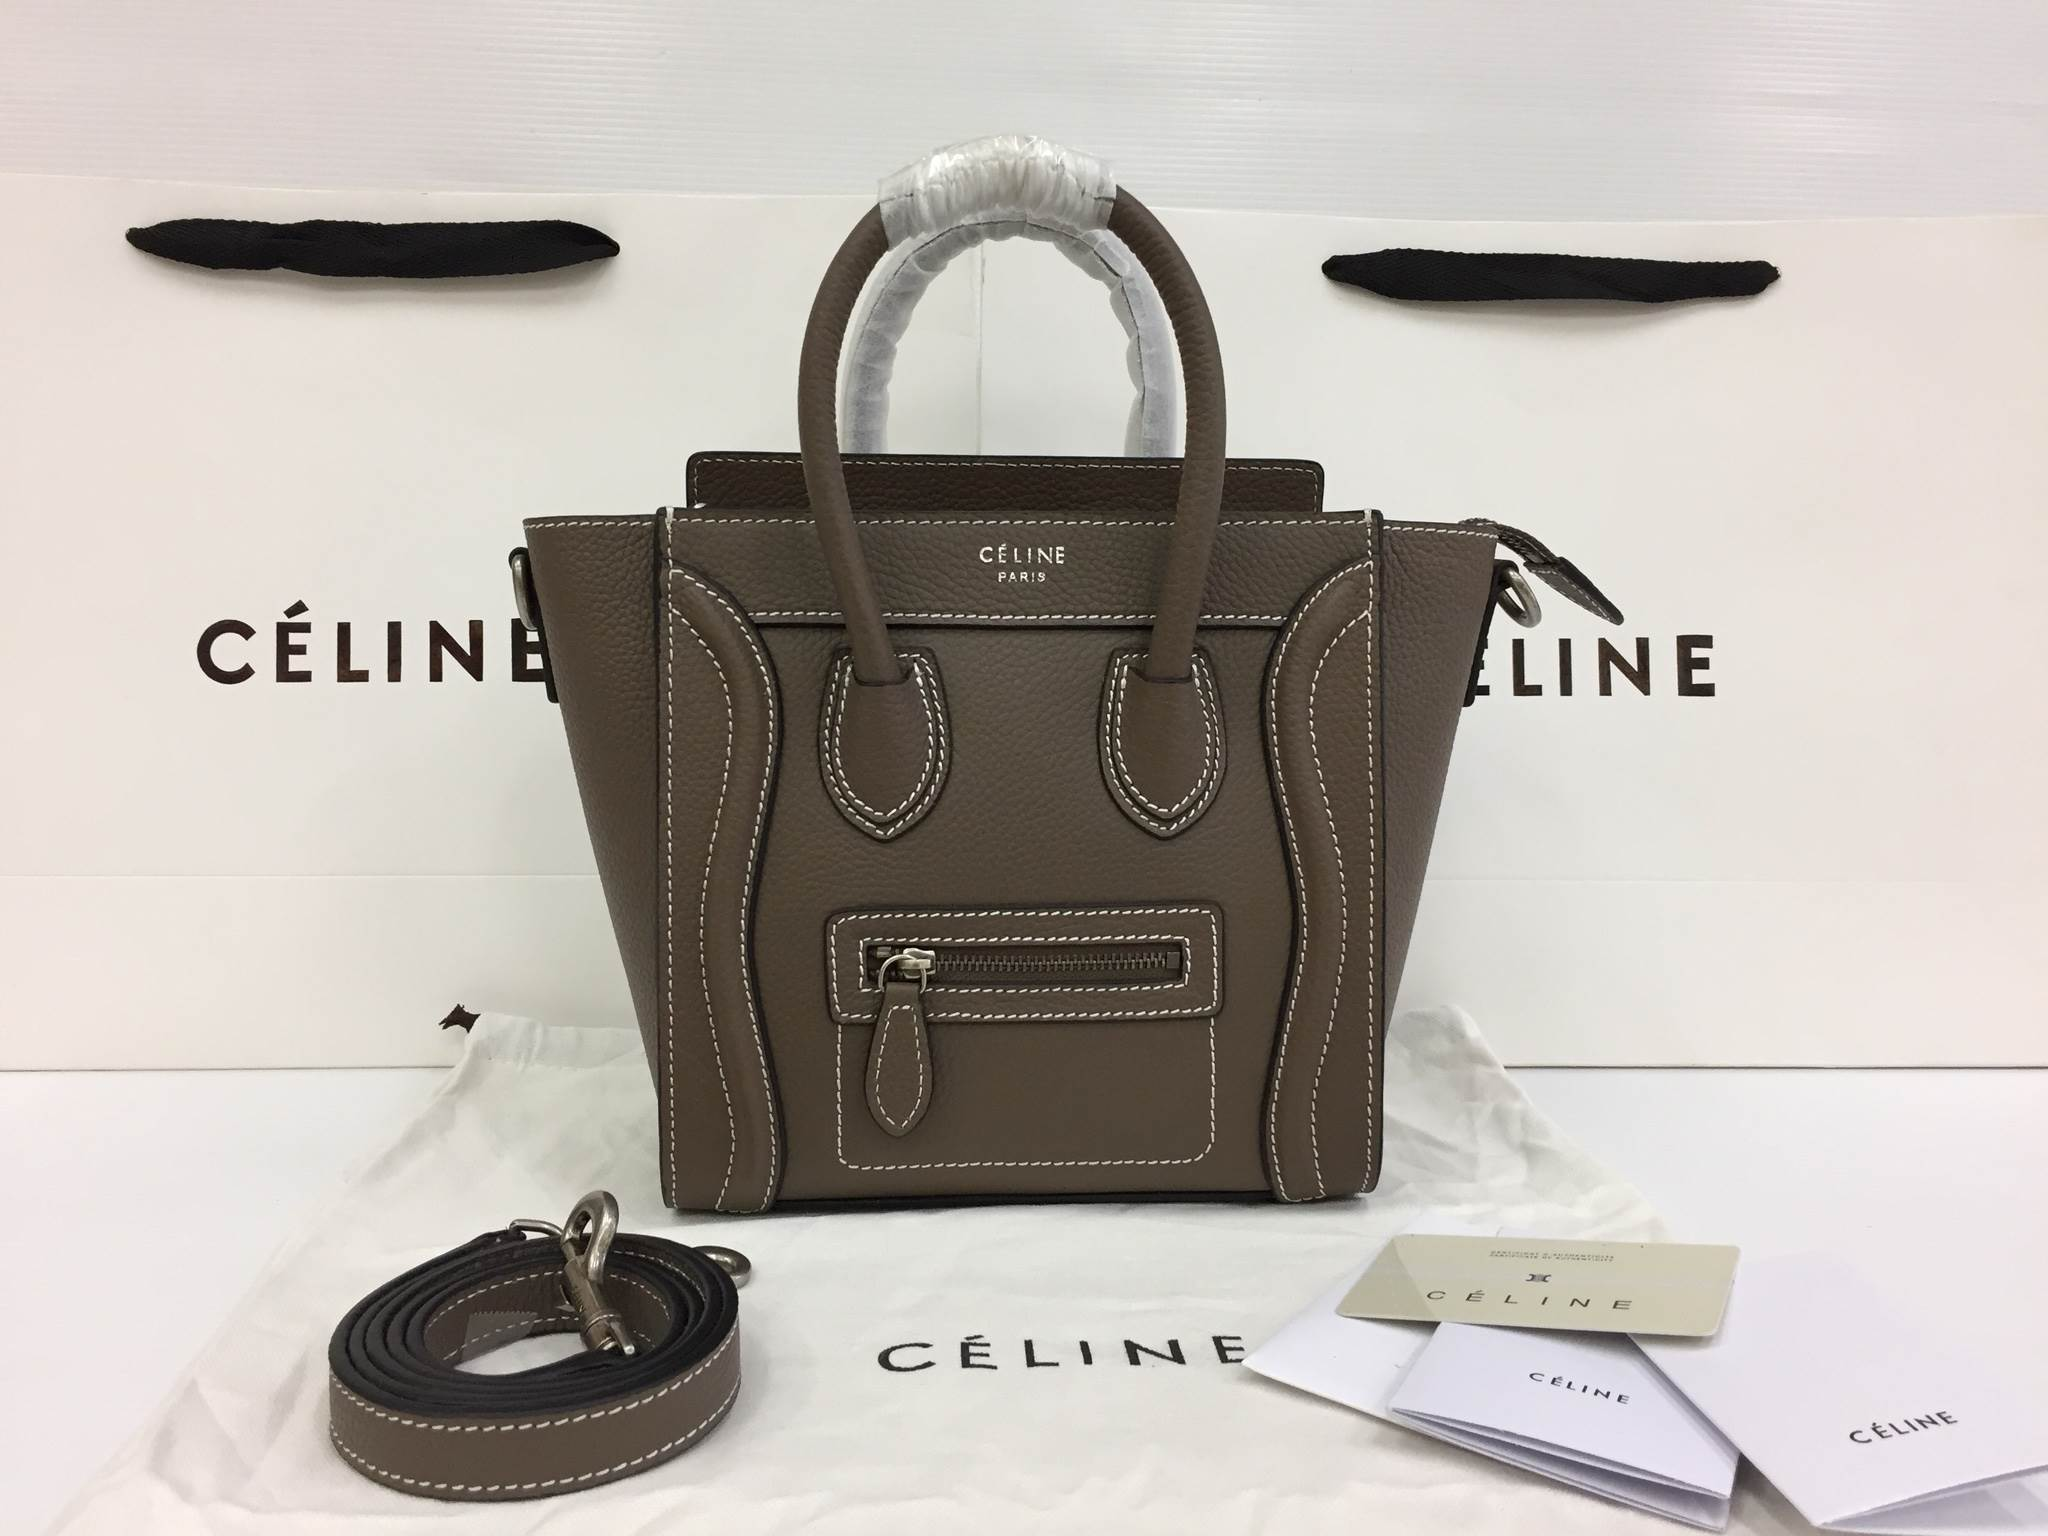 CELINE NANO LUGGAGE TOP Mirror Image 7 stars เกรด HI END